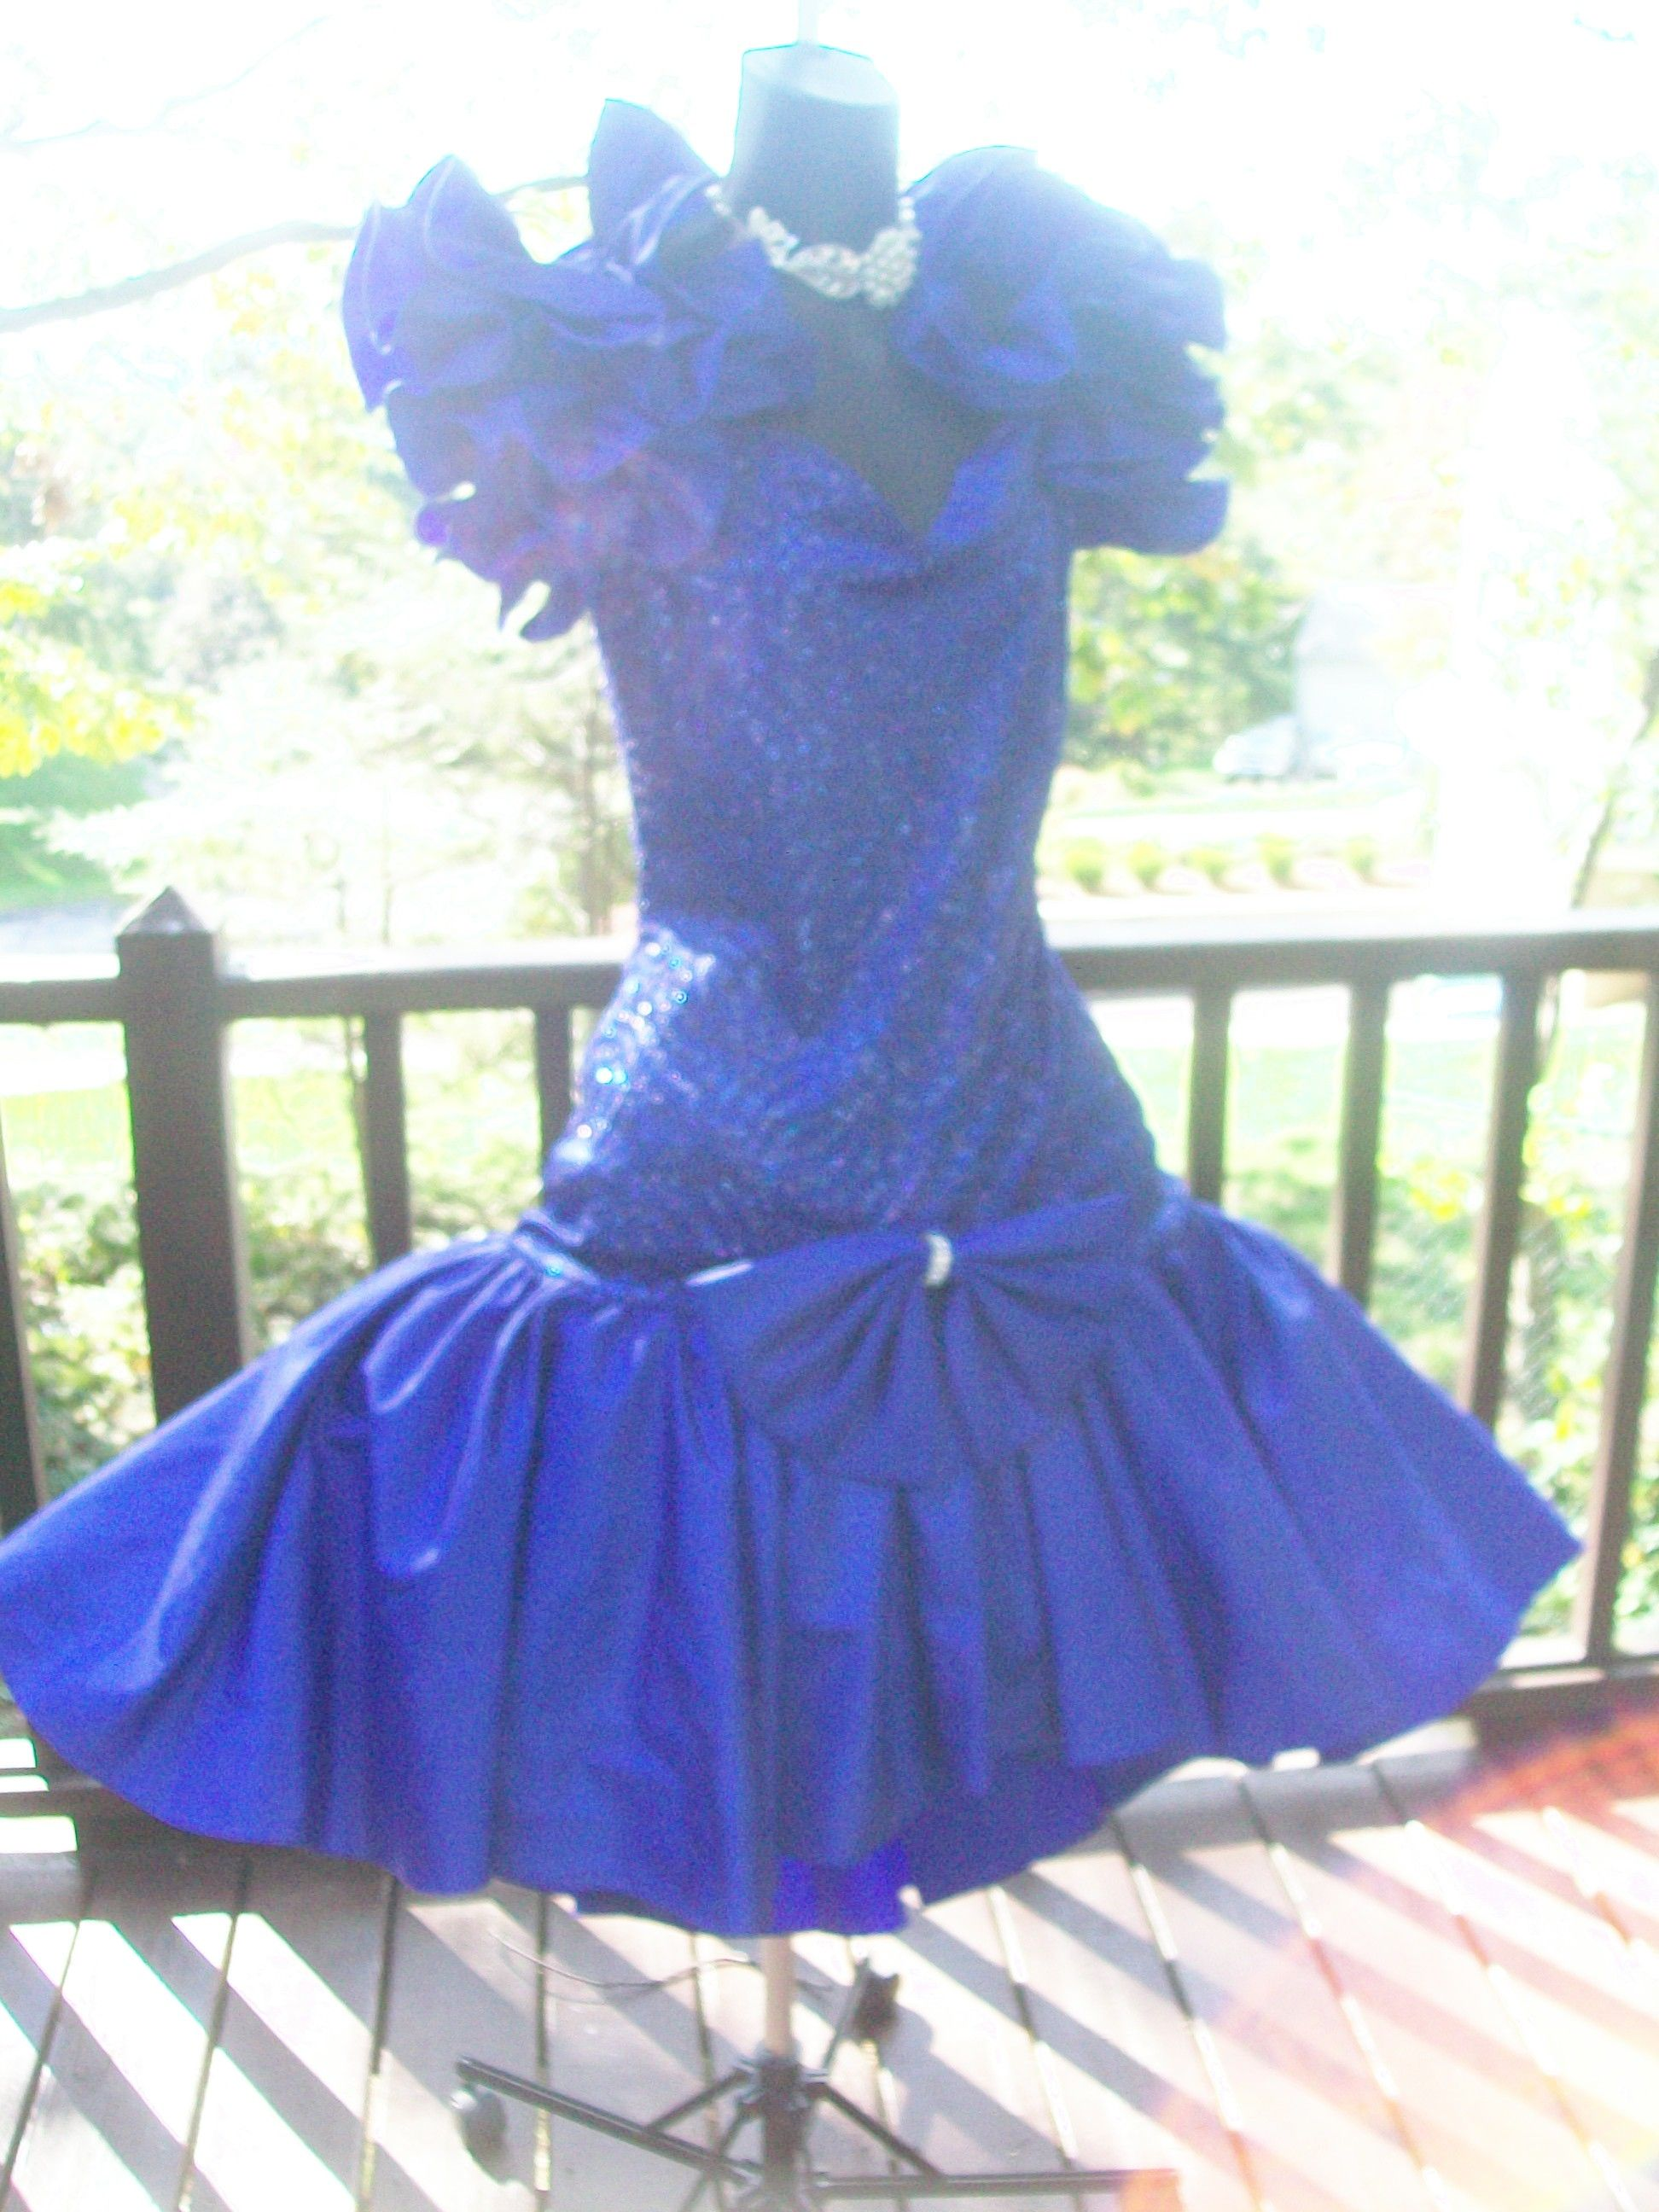 80s Prom Dress Mine Was Exactly Like This But It Was Red And Worn In The Early 90s 80s Prom Dress Homecoming Dresses Sparkly Prom Dresses 80s [ 2592 x 1944 Pixel ]